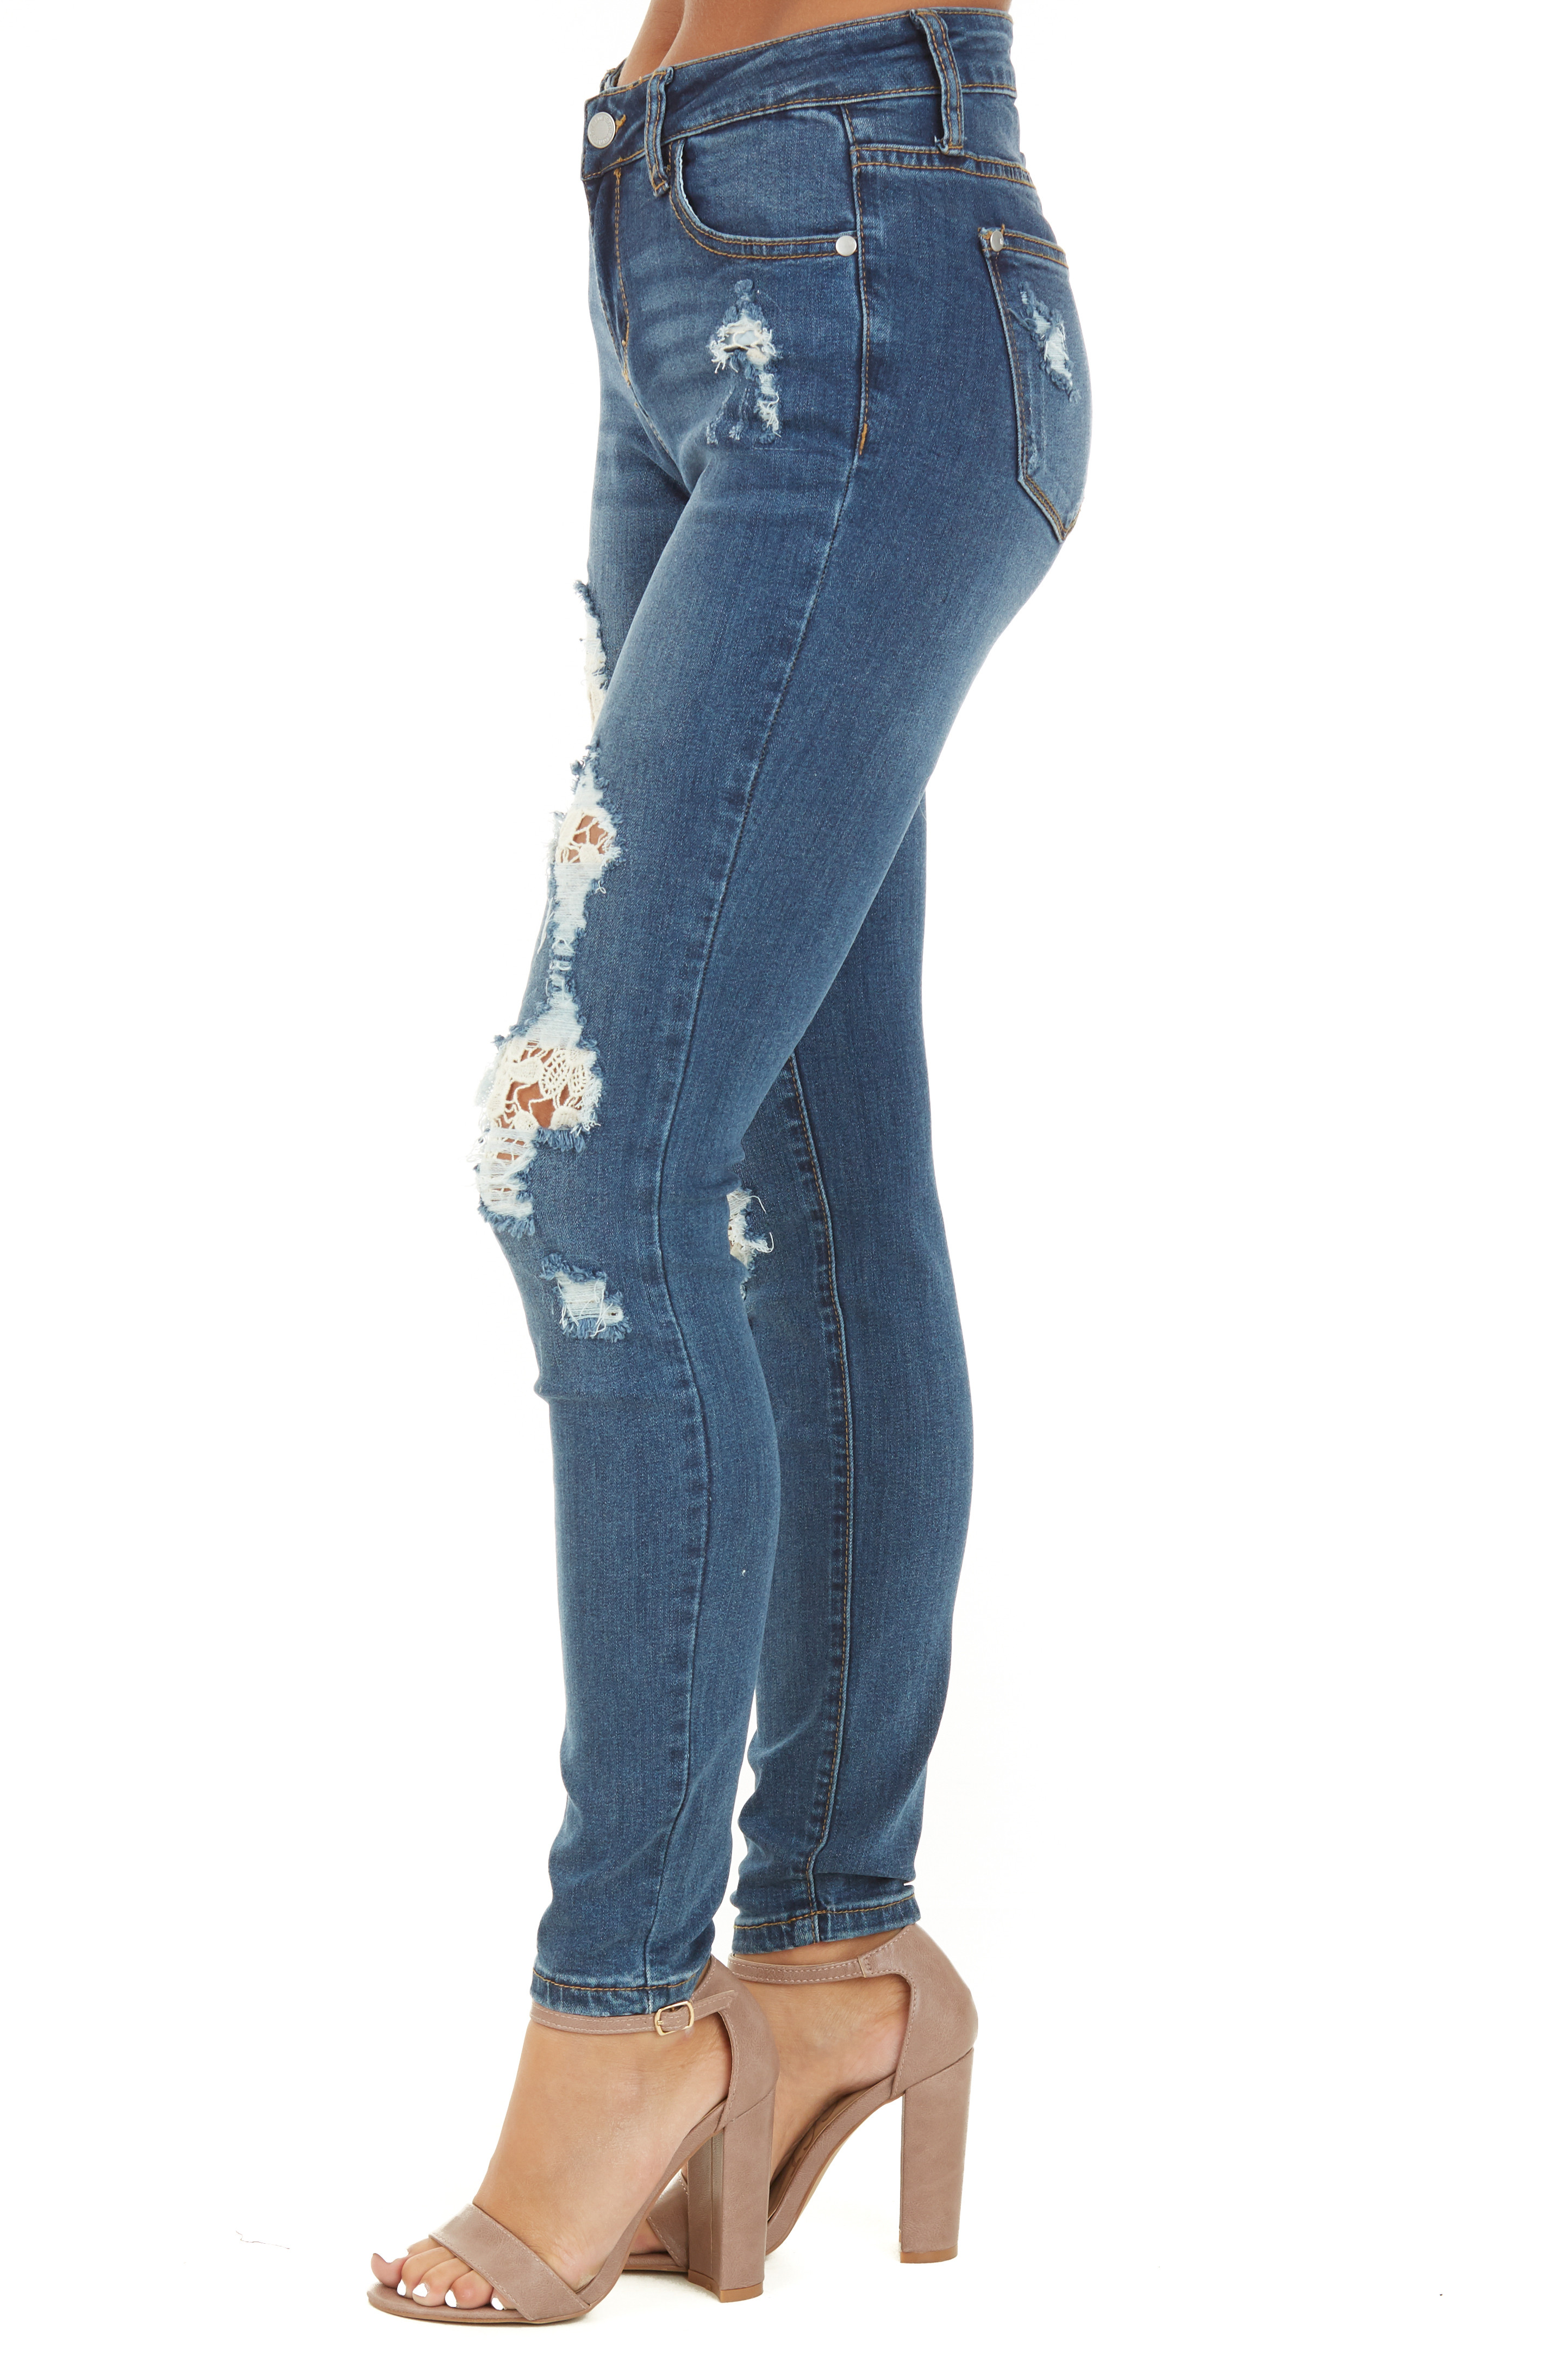 Medium Wash Distressed Skinny Jeans with Lace Details side